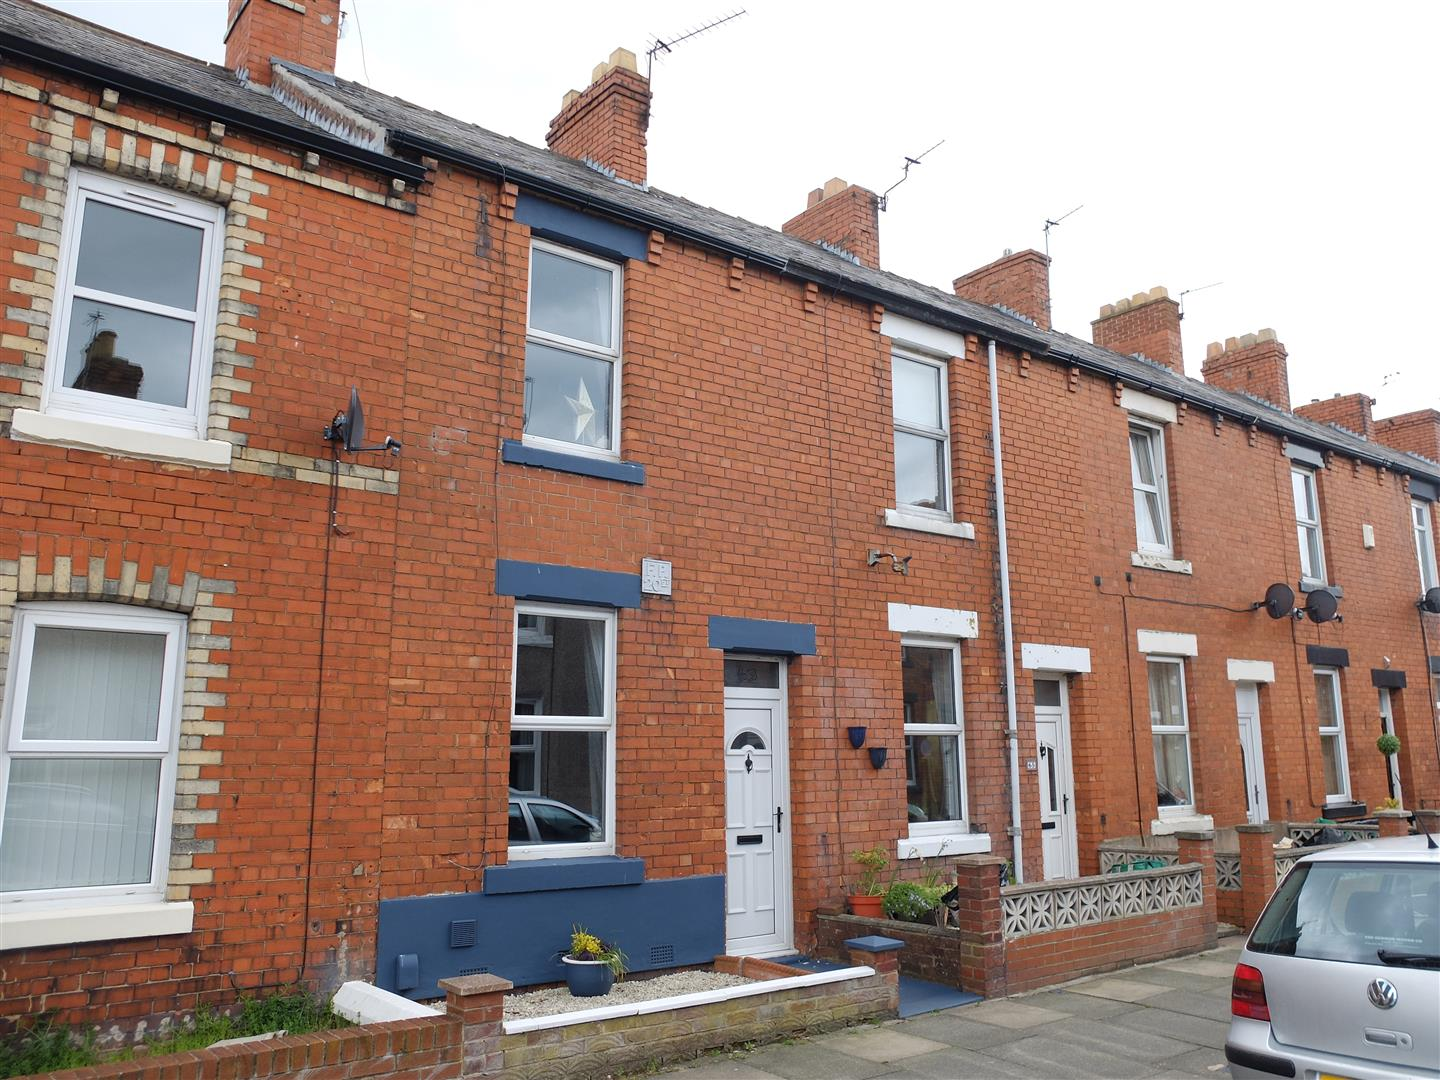 63 Sybil Street Carlisle 2 Bedrooms House - Terraced For Sale